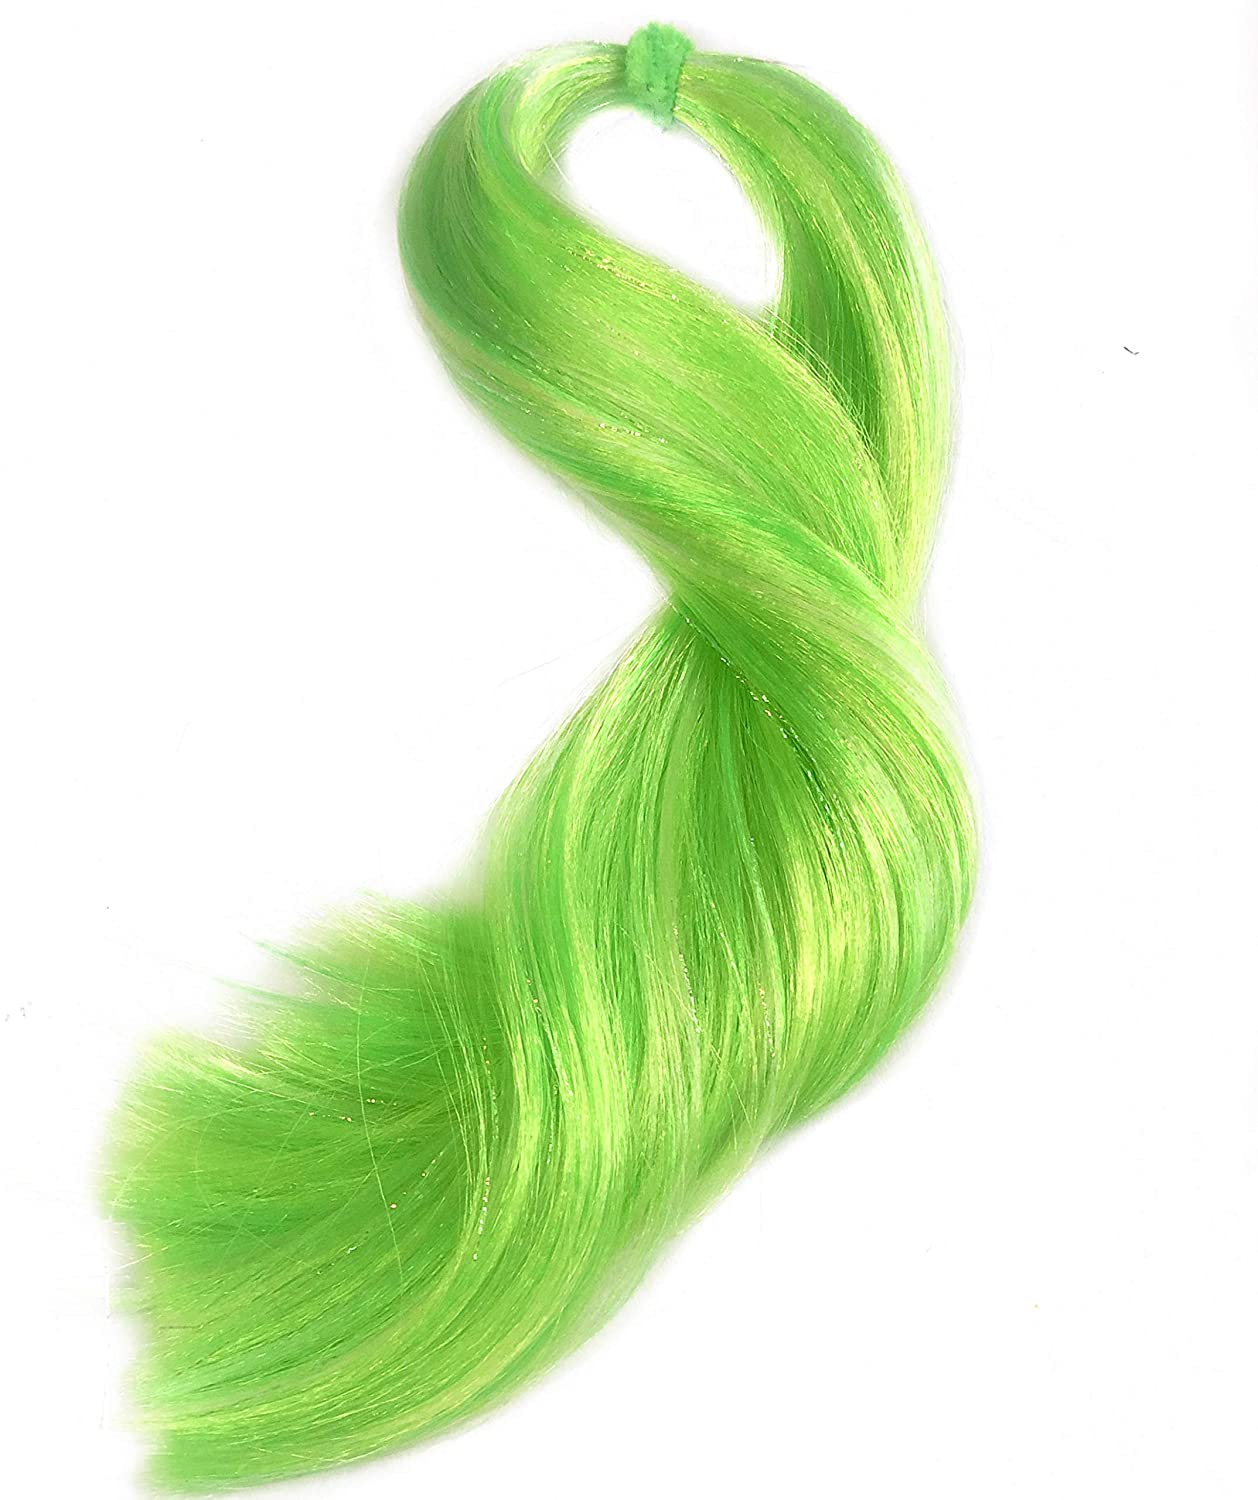 DIY Rehair 20 Grams Doll Wigs Mermaid 18 Length Professional Doll Grade Quality Deluxe Nylon Doll Hair Blends for Rerooting Dolls